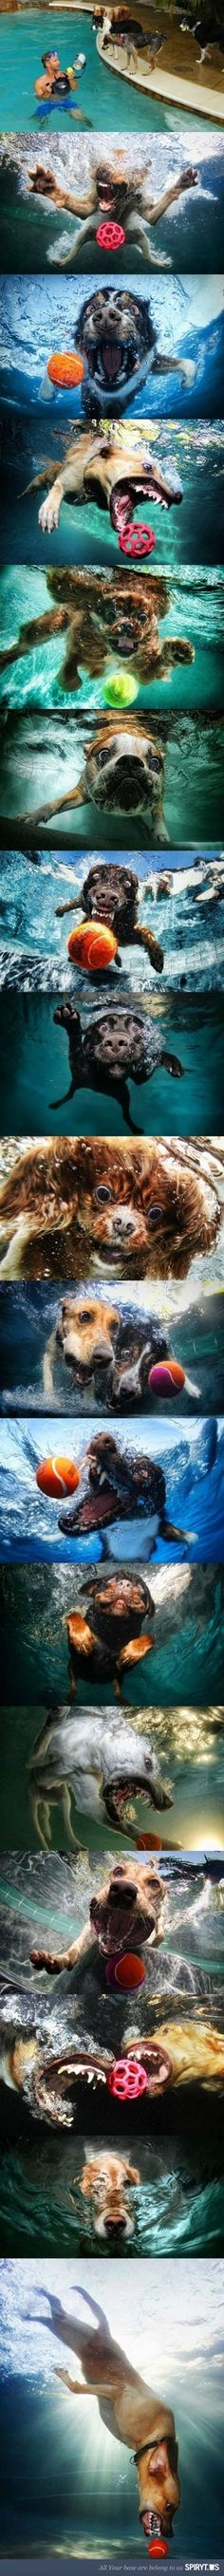 Underwater Dogs: photographs of dogs underwater by Seth Casteel Love My Dog, Dog Pictures, Animal Pictures, Funny Pictures, Dog Photos, Amazing Pictures, Animals And Pets, Funny Animals, Cute Animals